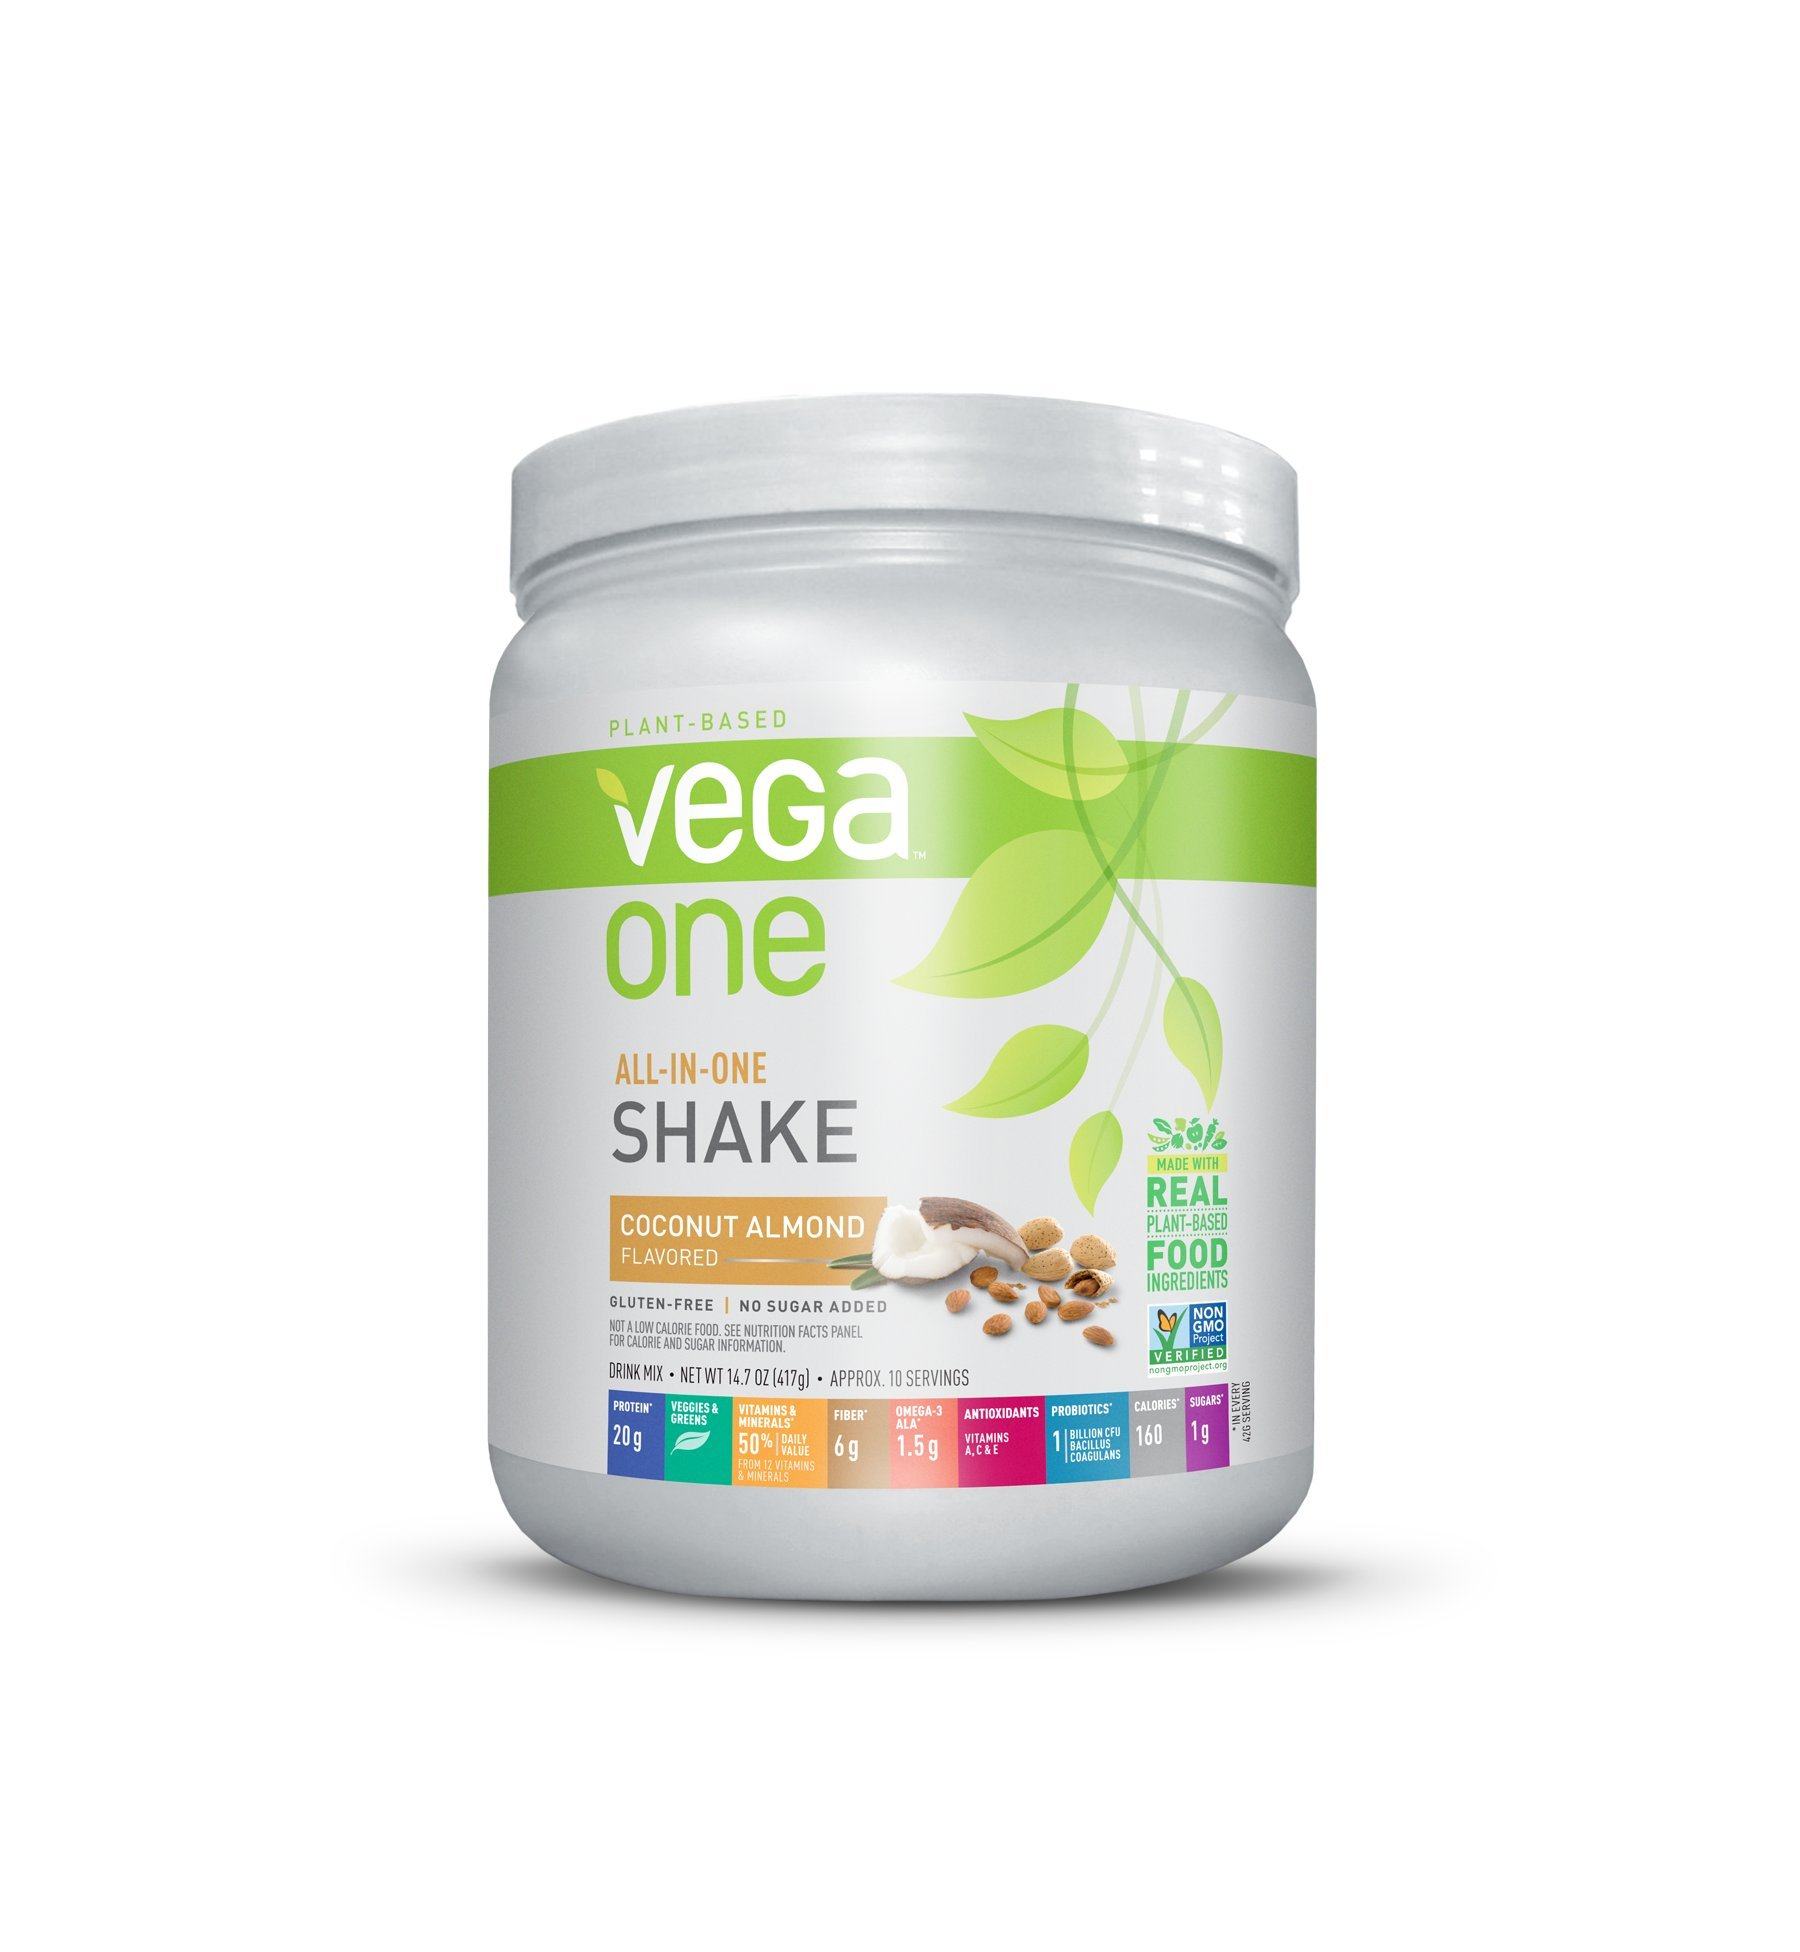 Vega One All-In-One Nutritional Shake Coconut Almond (10 Servings) - Plant Based Vegan Protein Powder, Non Dairy, Gluten Free, Non GMO, 14.7 Ounce (Pack of 1)